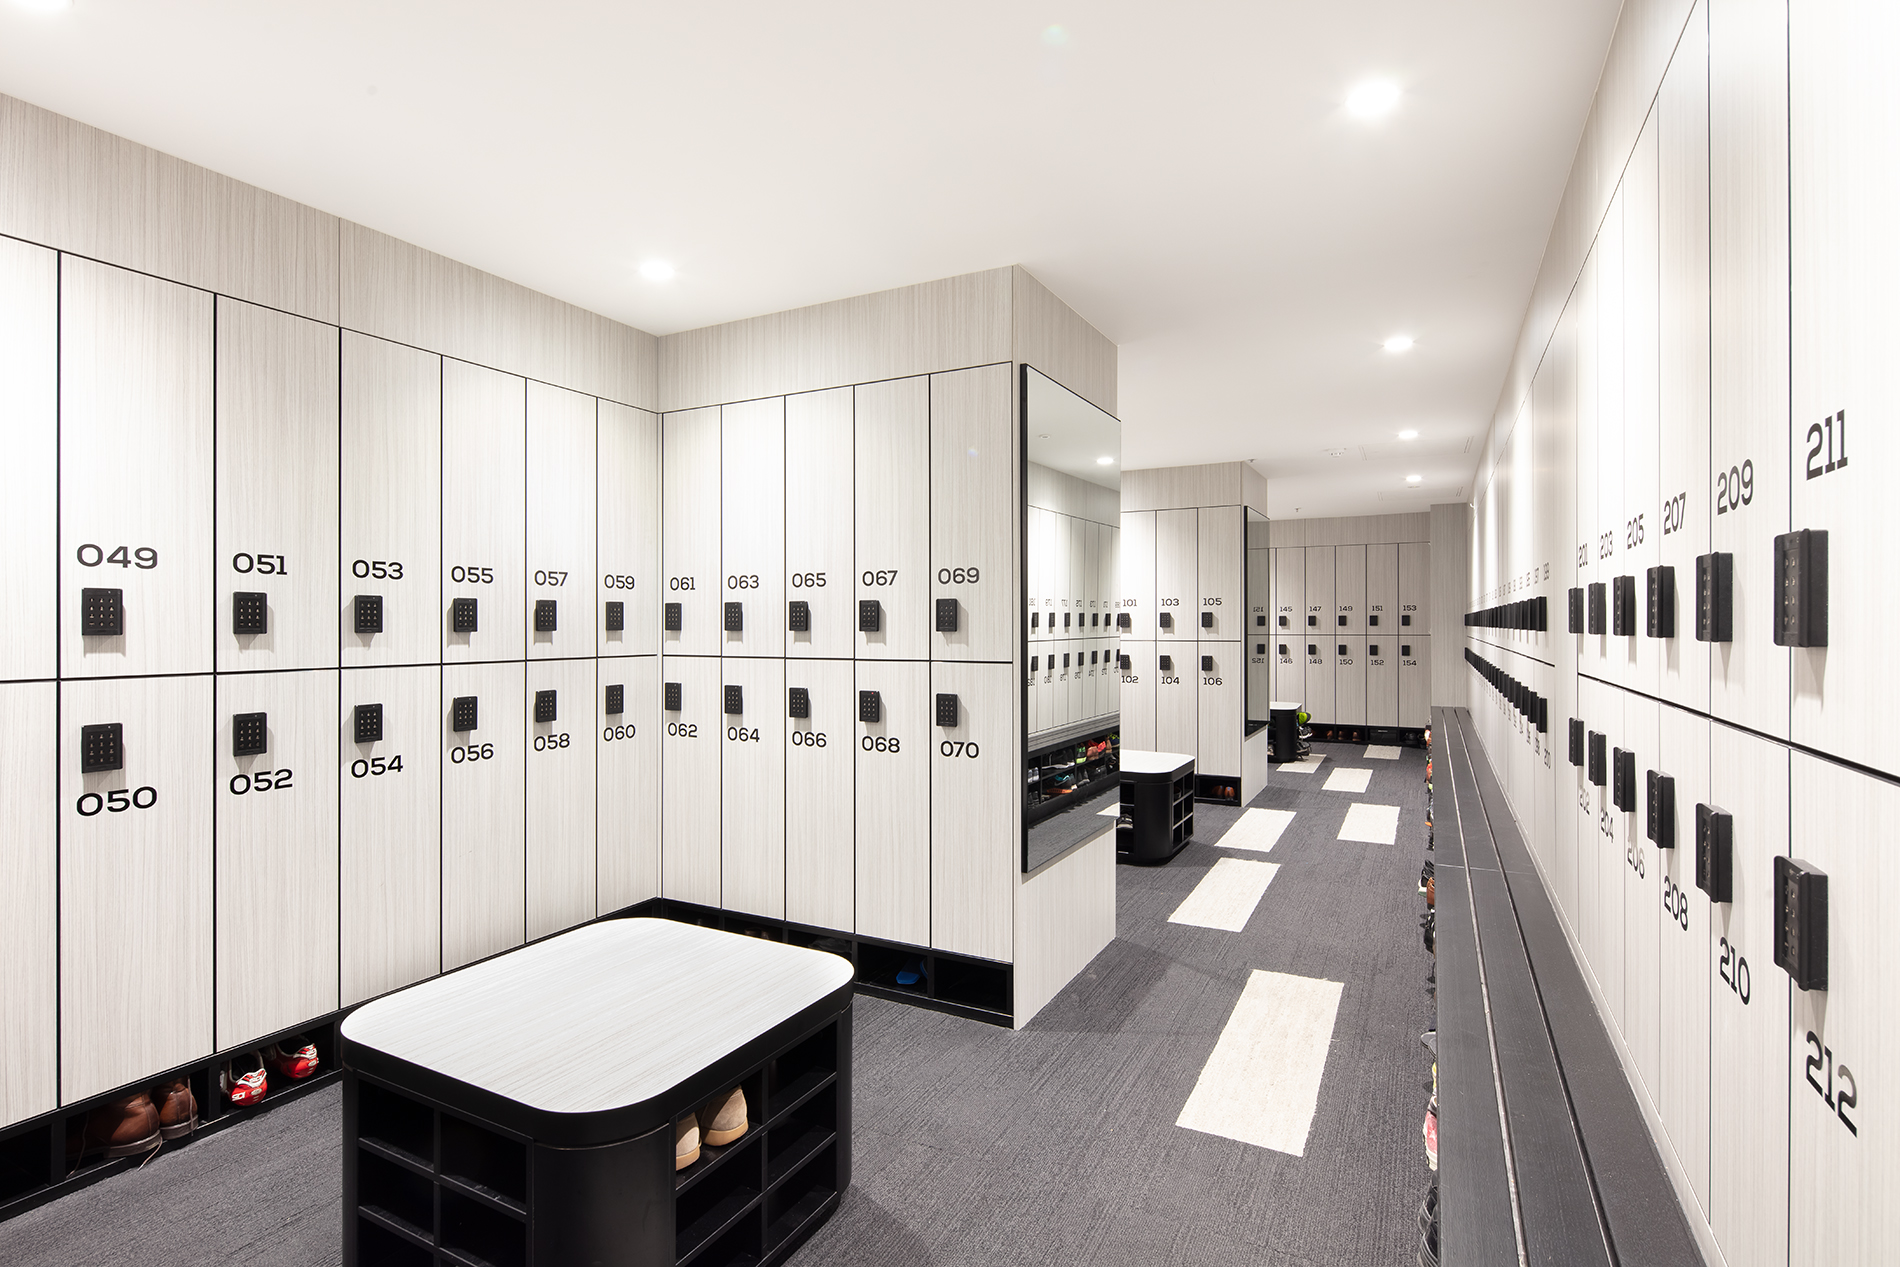 Locker room in an office building